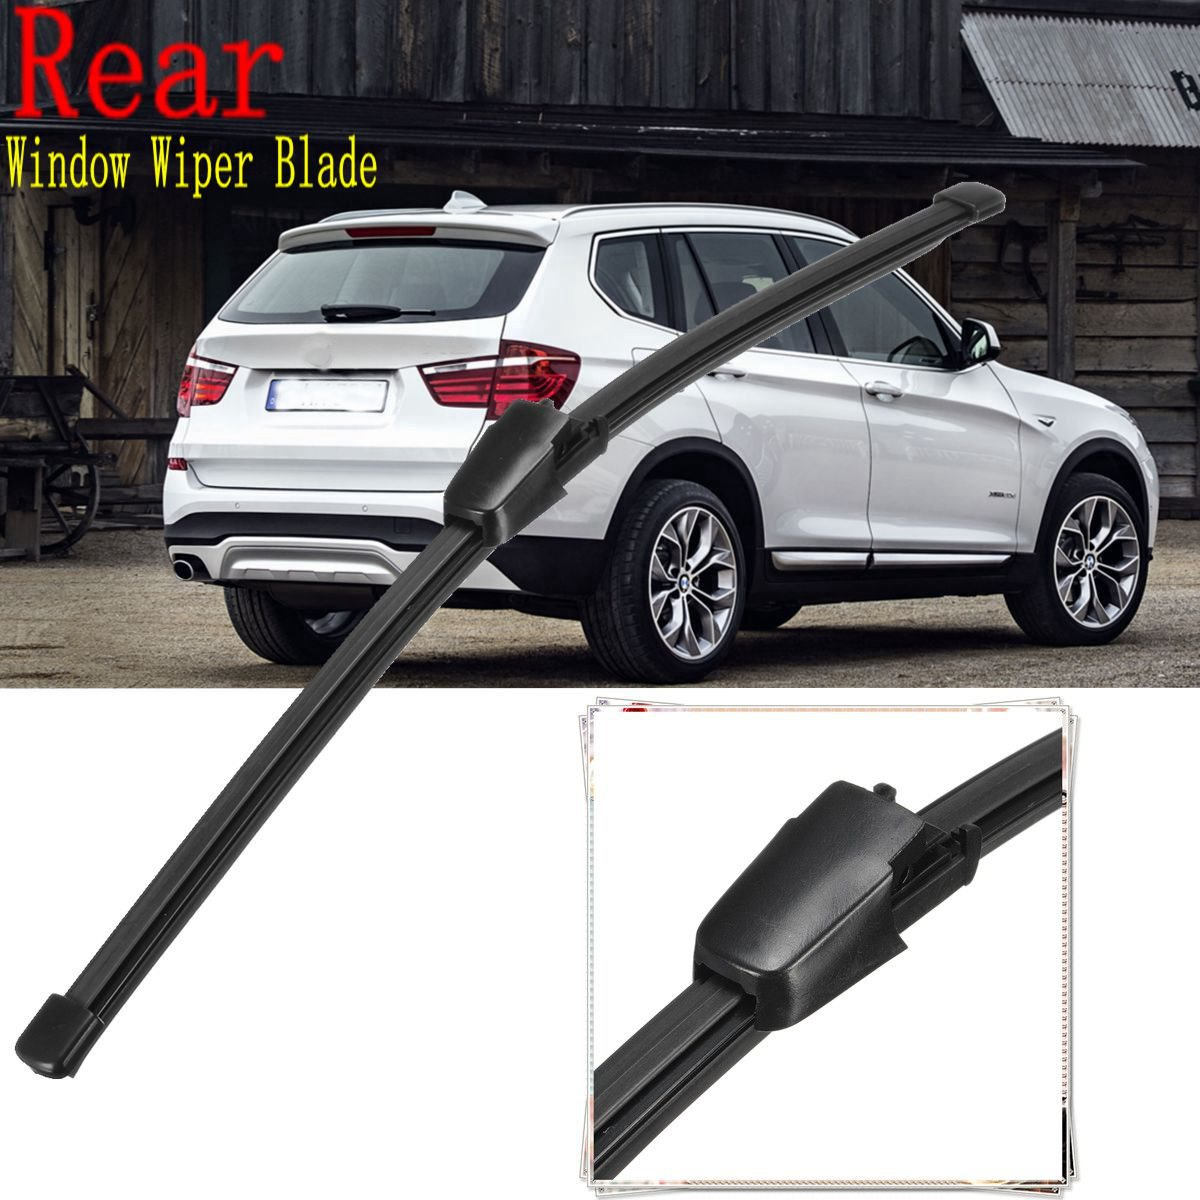 13inch rear window wiper blade for bmw x3 f25 vw tiguan polo 9n golf v